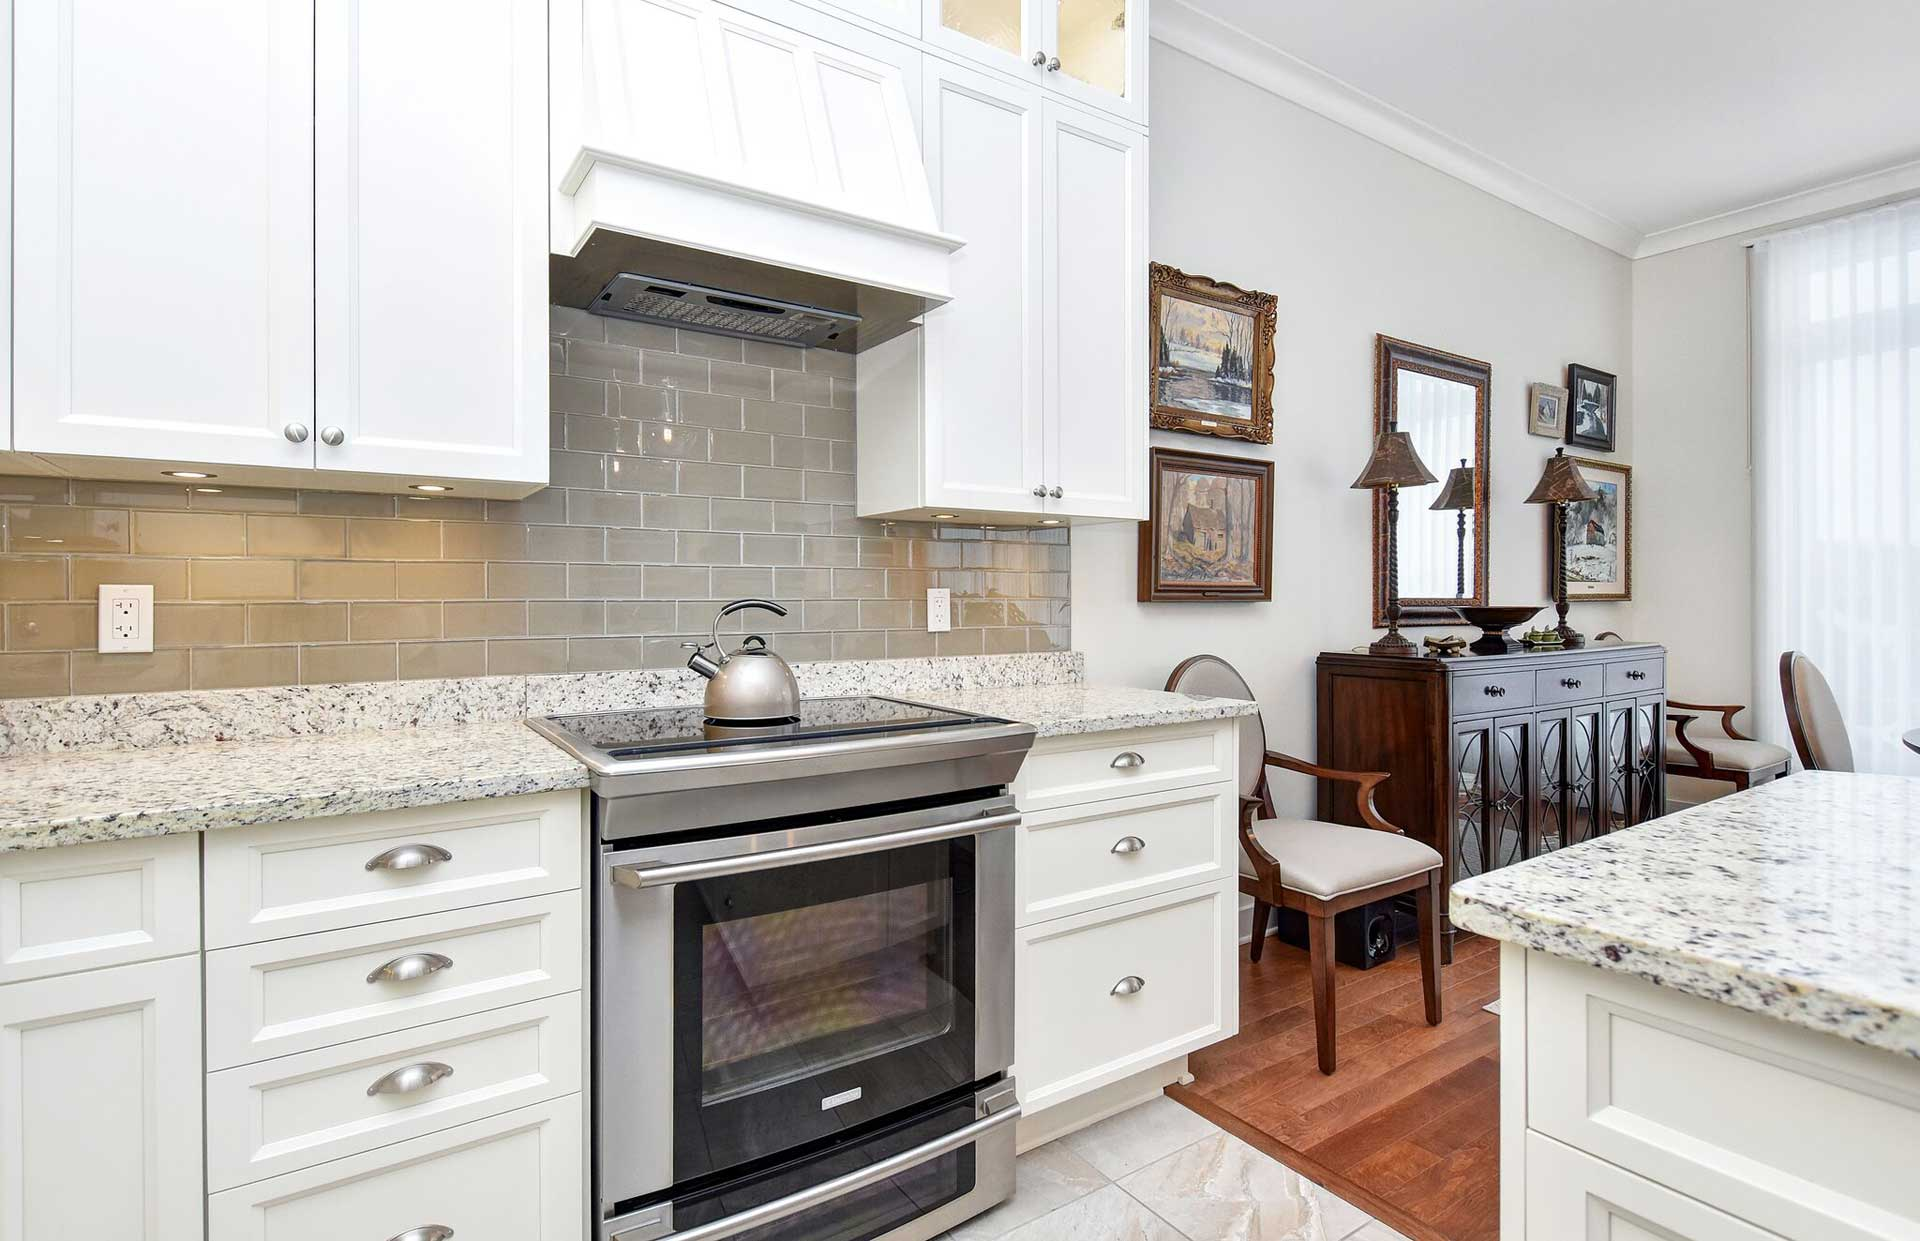 condo living, condo kitchen, shaker cabinets, granite countertop, glass subway tile backsplash